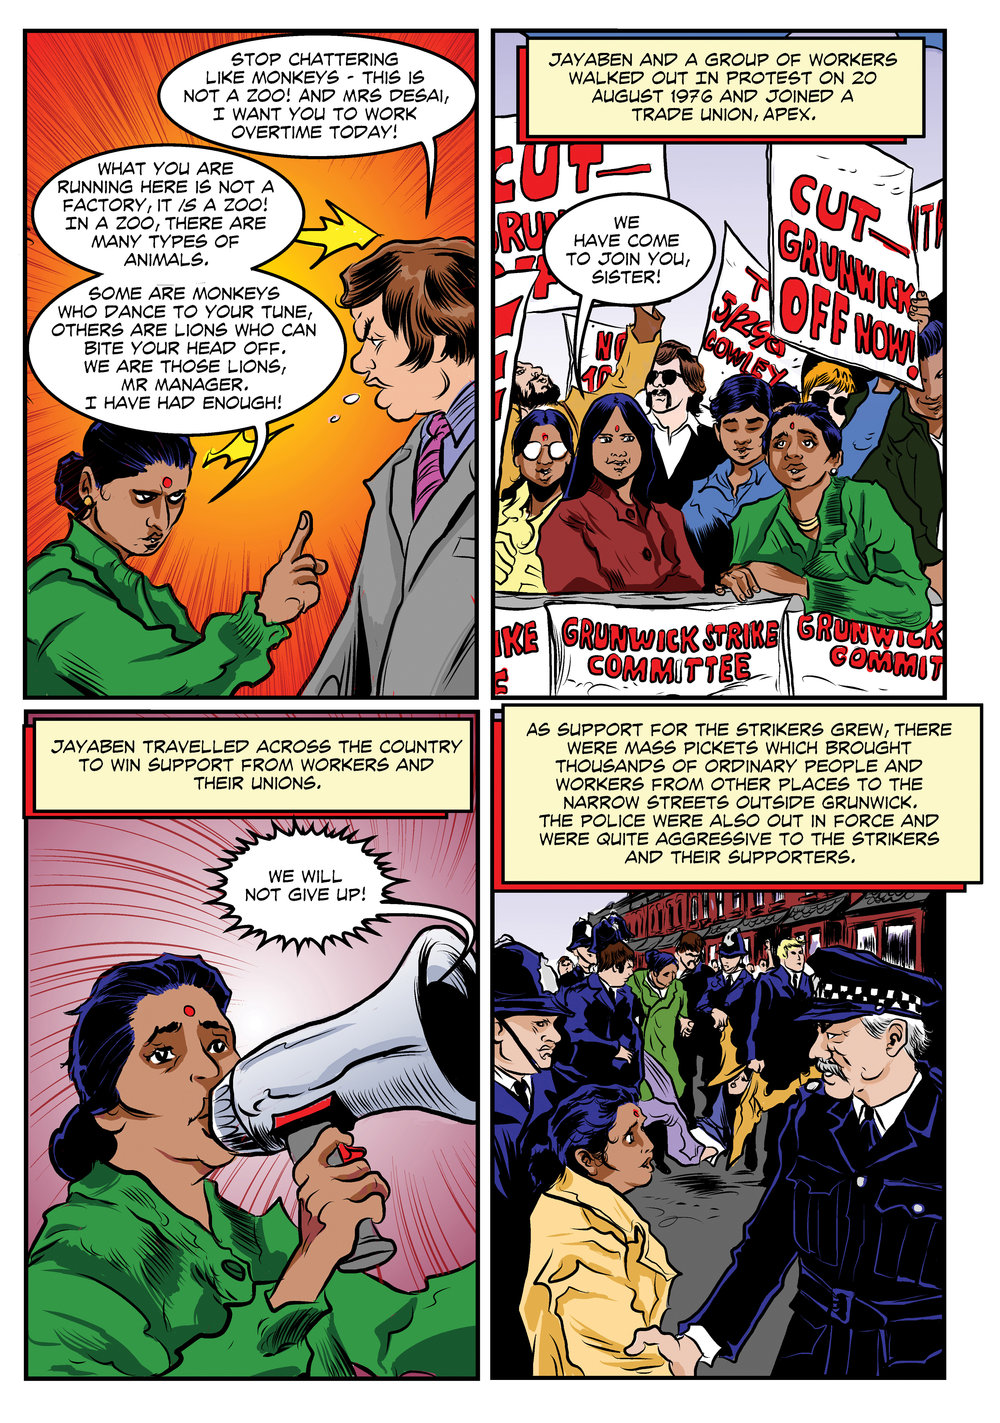 Jayaben Desai's account of the working conditions and her walk-out from Grunwick, in the comic, Striking Women. Available for free download at  www/strikingwomen.org.uk